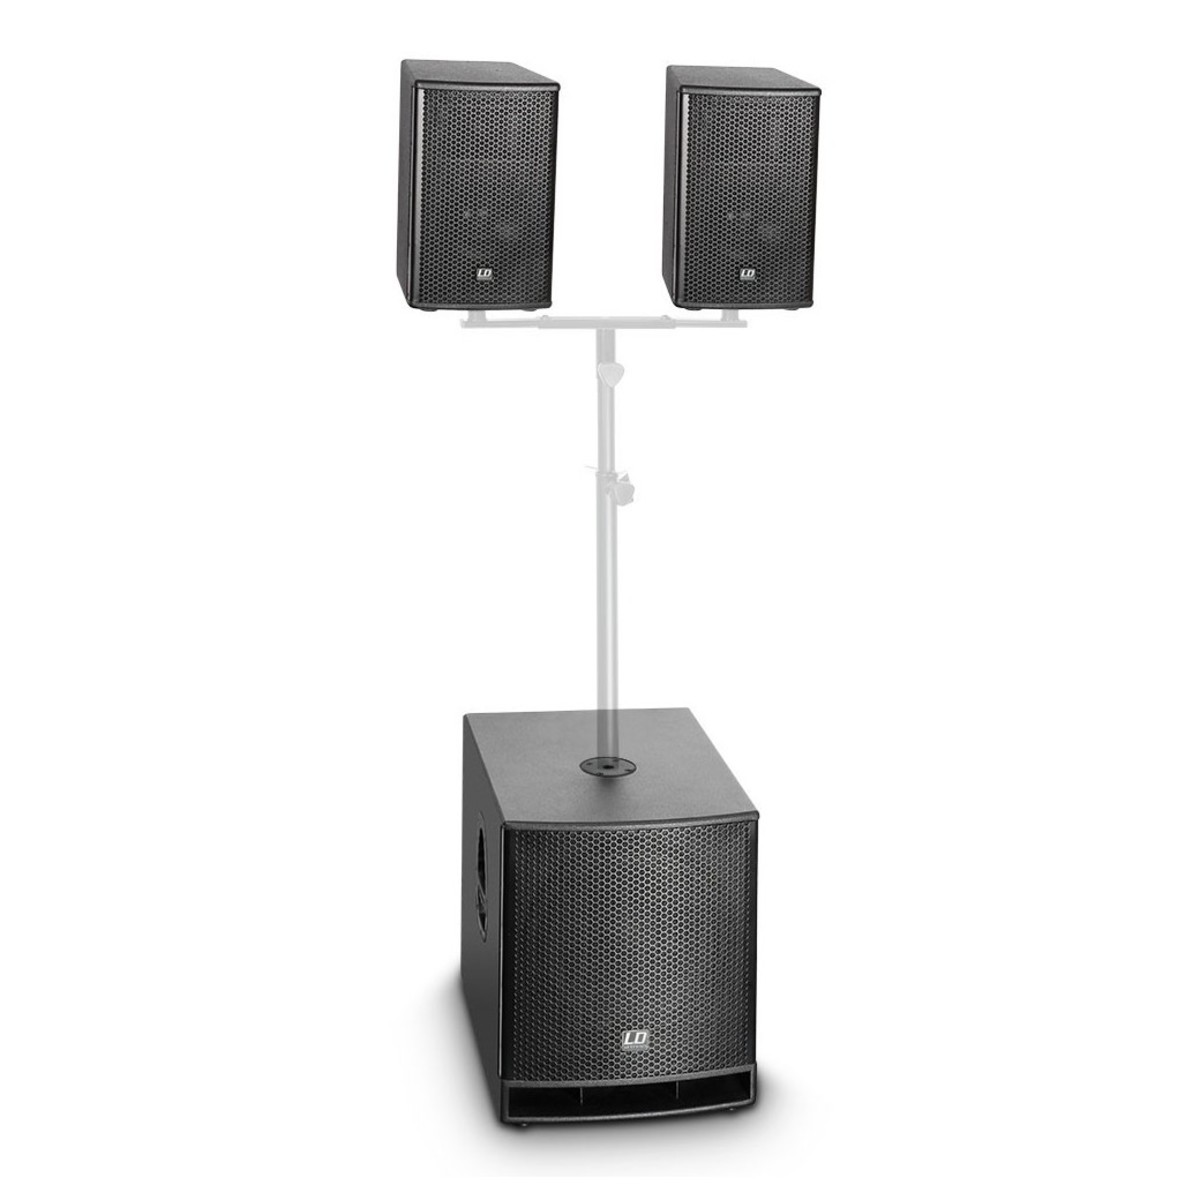 ld systems dave10g3 compact active pa system at gear4music. Black Bedroom Furniture Sets. Home Design Ideas